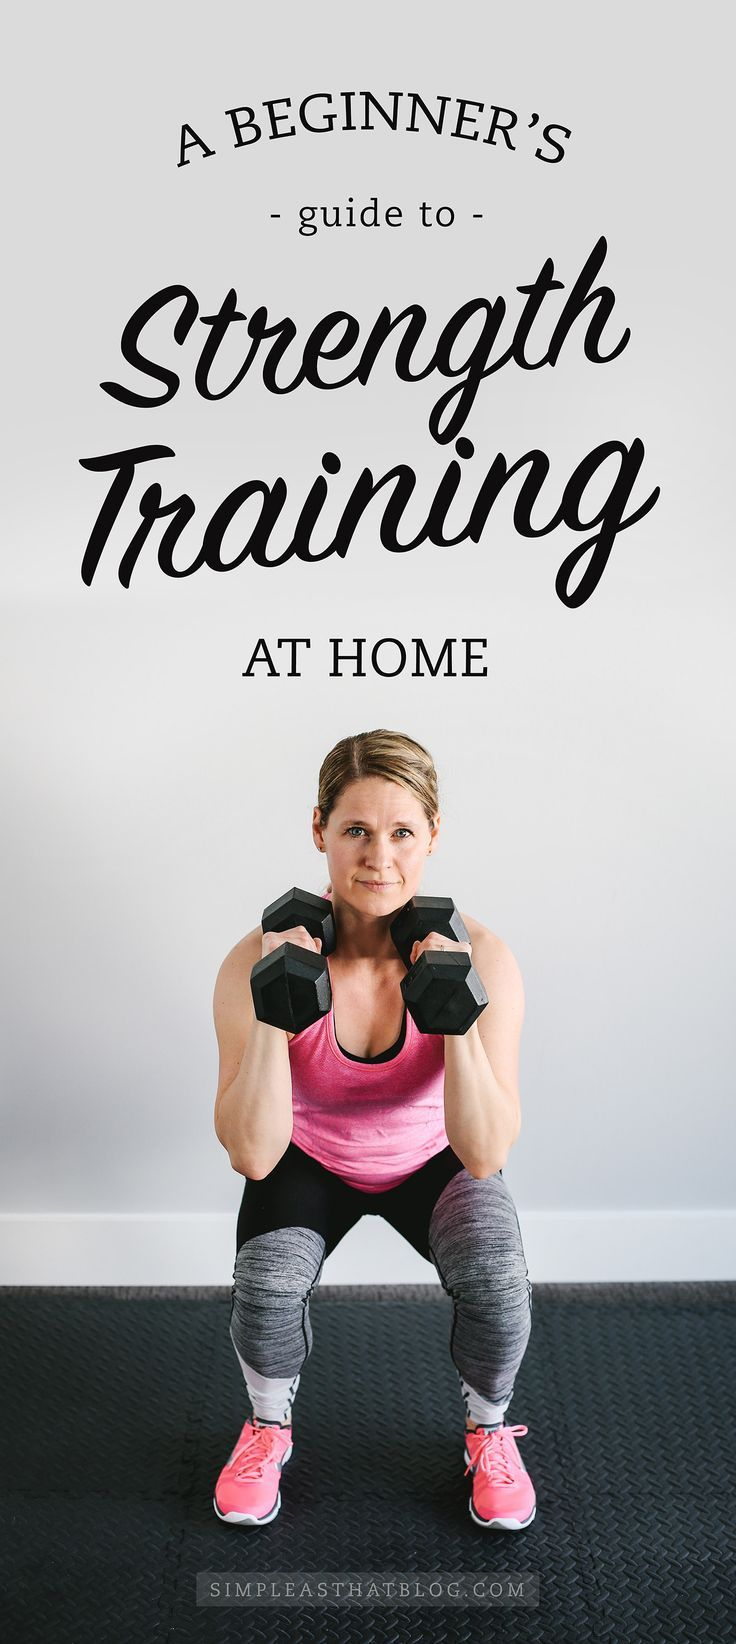 "Interested in fitness training at home but unsure where to start? Check out ""A Beginner's Guide to Strength Training at Home"" for 5 tips on safe, effective weight training and a 30-minute total body workout you can do today!"